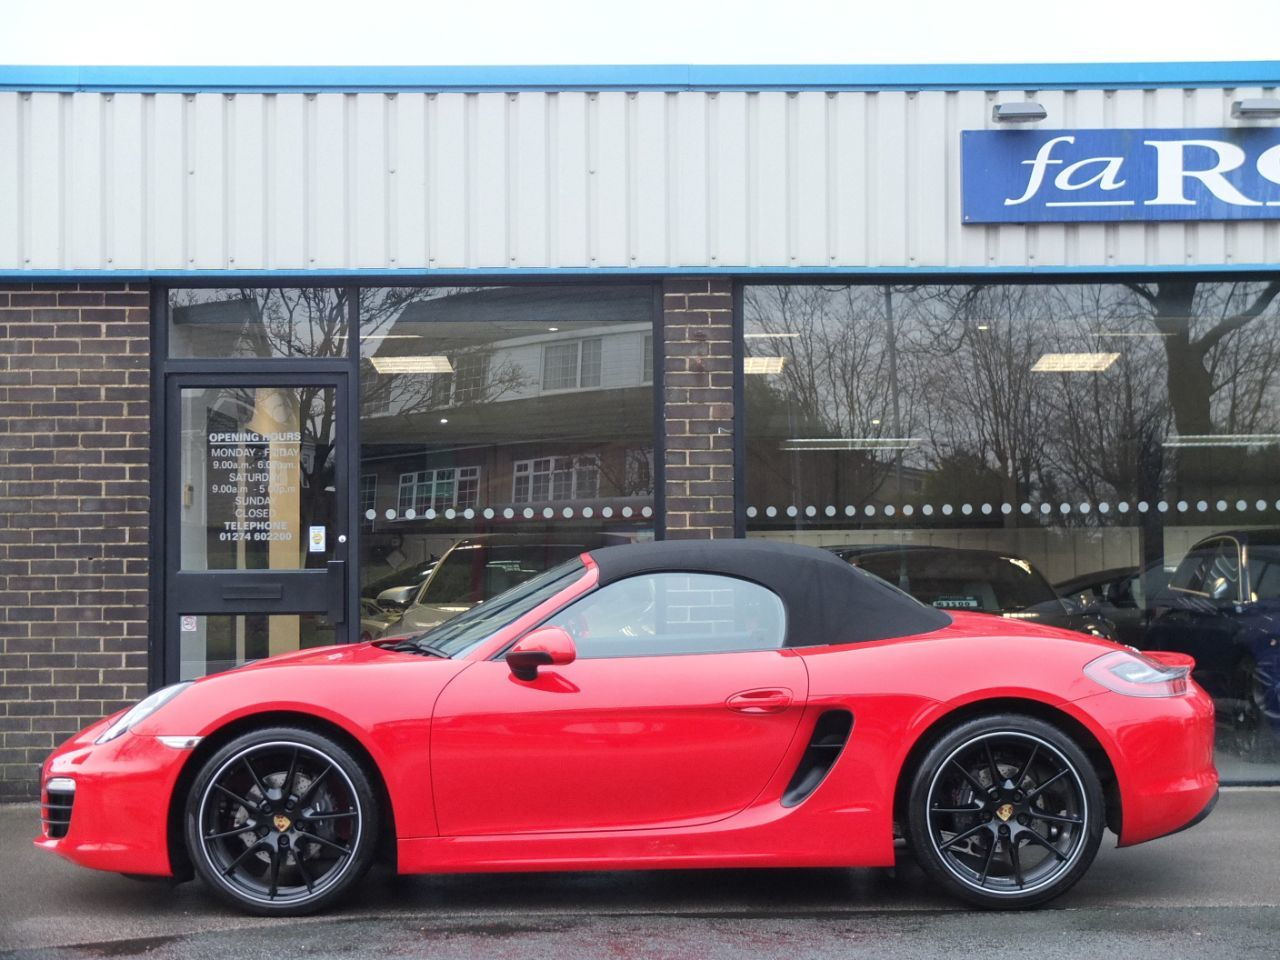 Porsche Boxster 2.7 PDK Convertible Petrol Guards Red